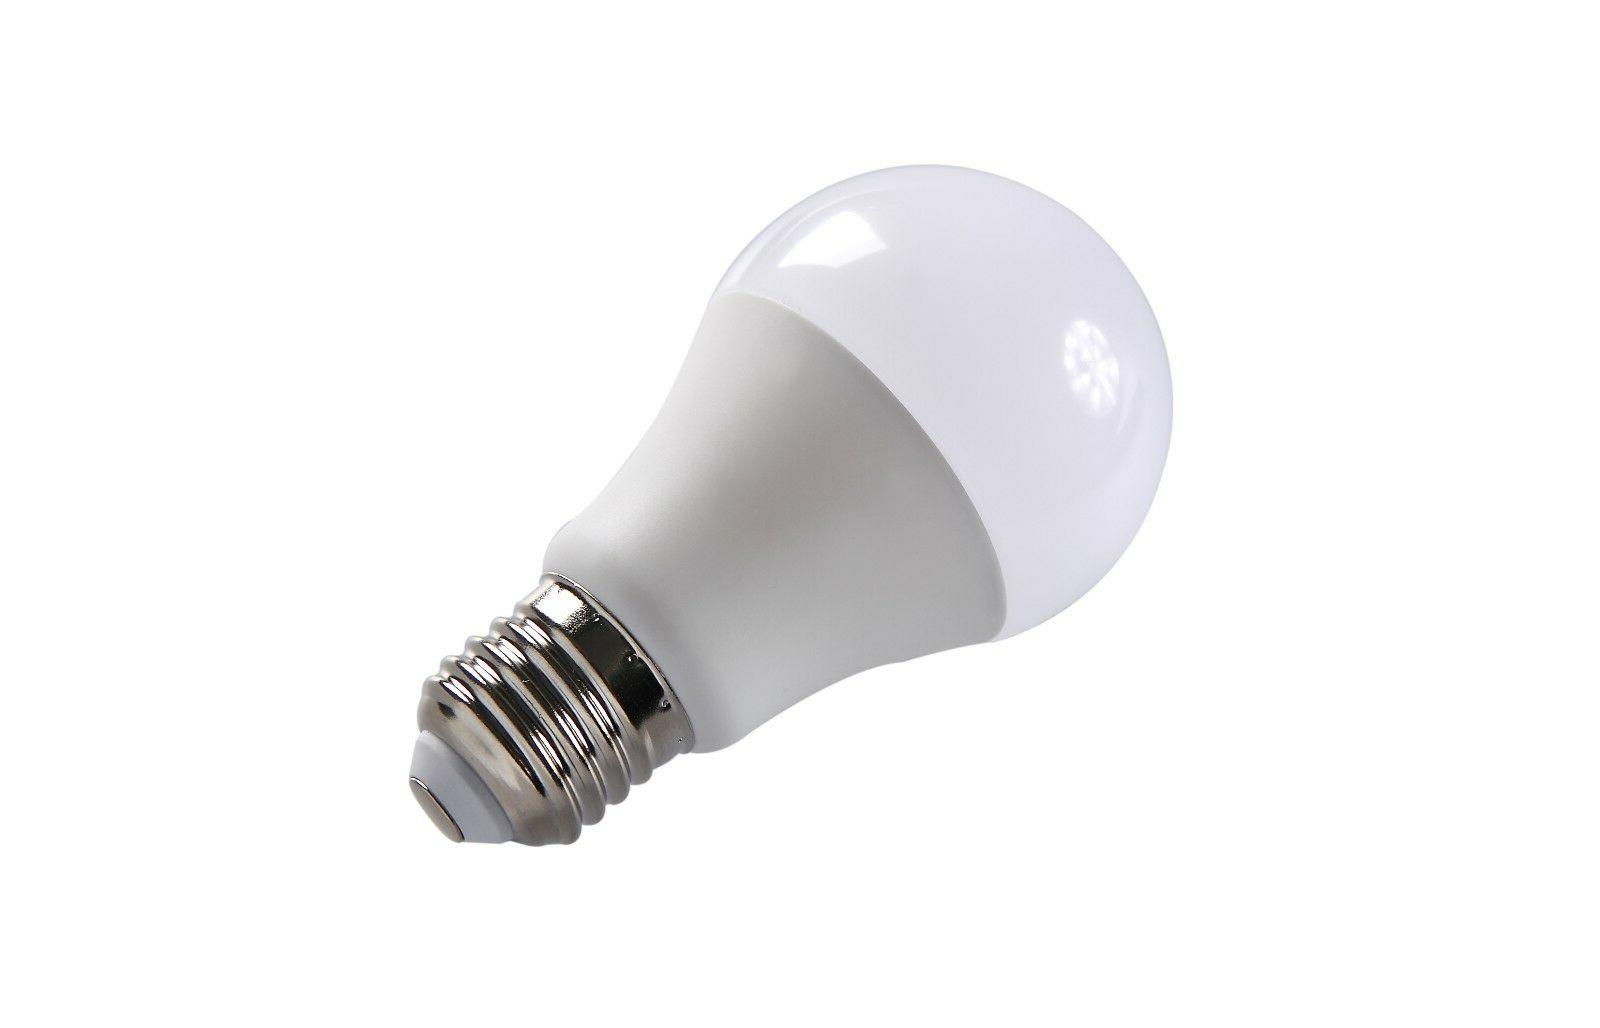 5 Pack Luxlichat Dimmable 100W Equivalent A19 Led Light Bulb